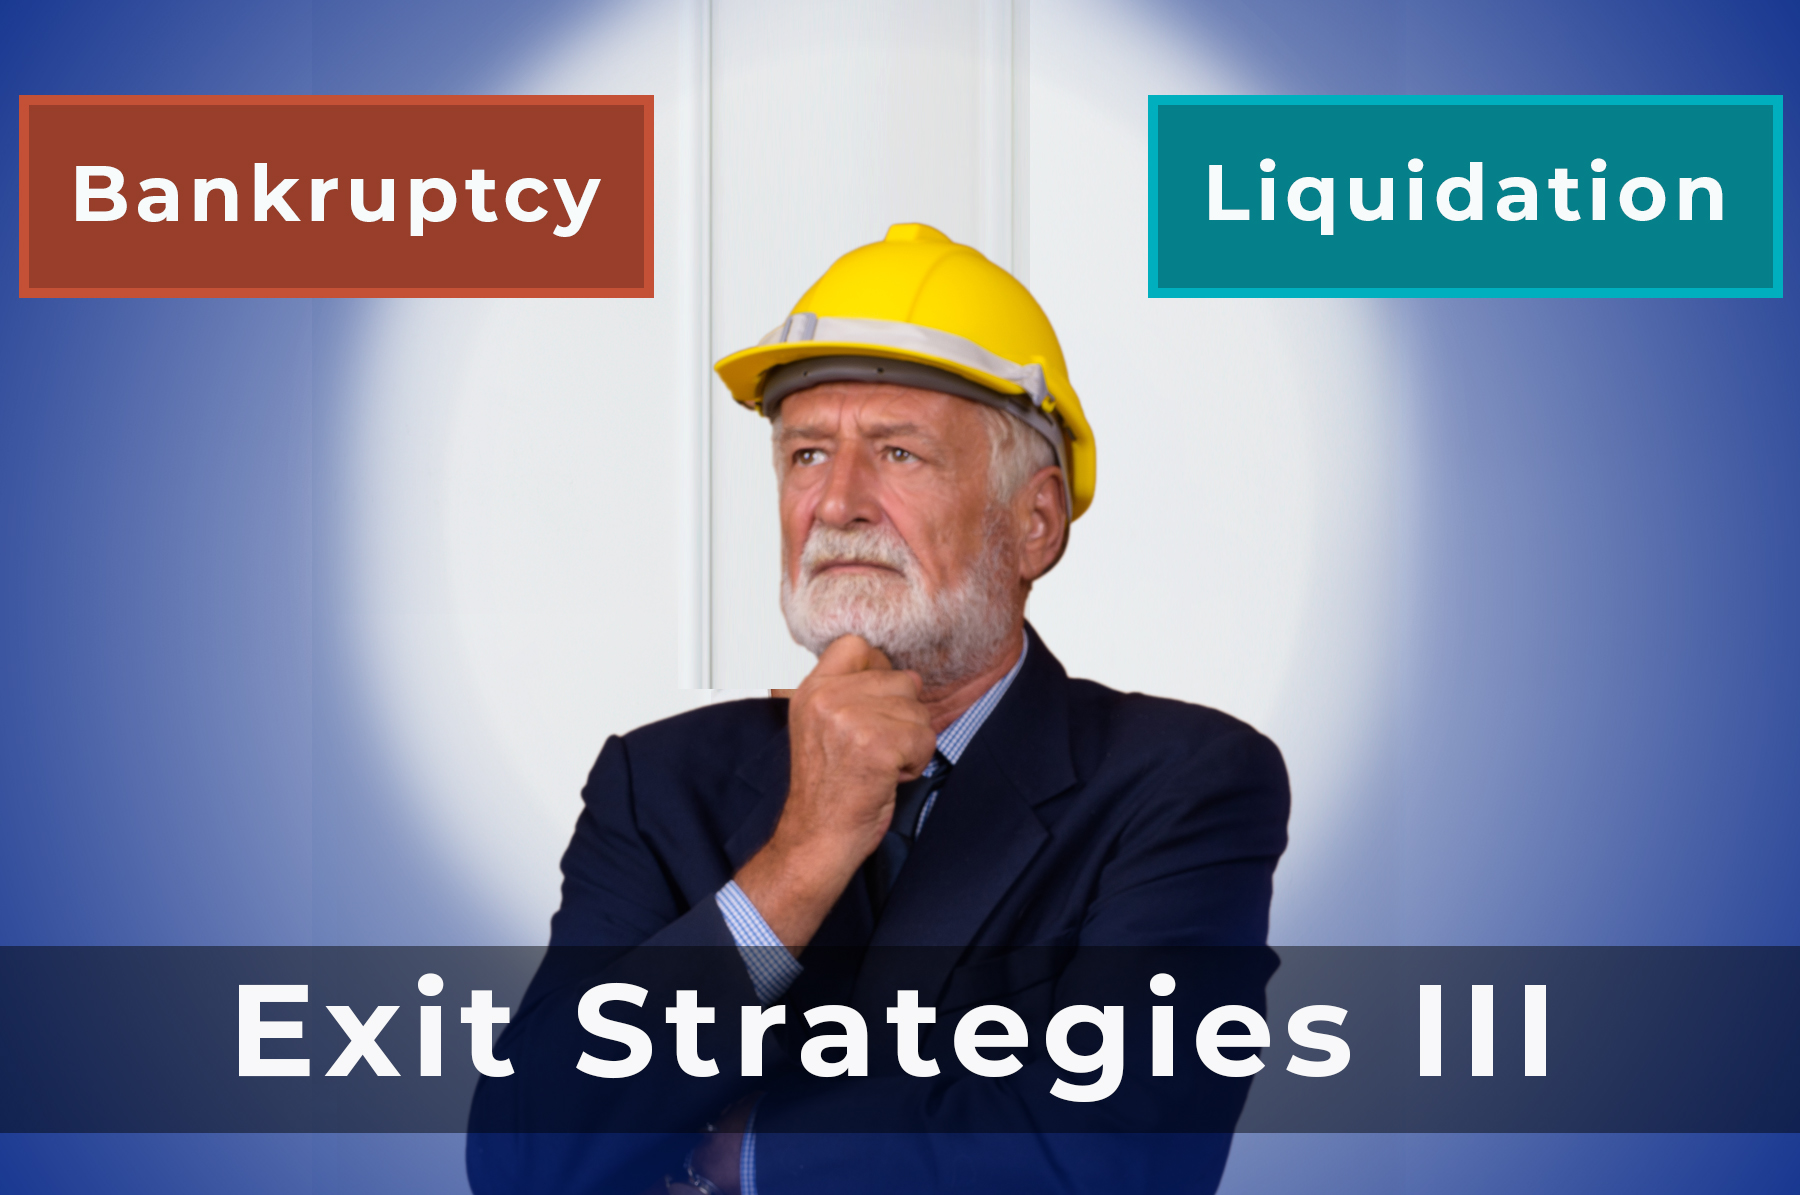 BUSINESS EXIT STRATEGIES III